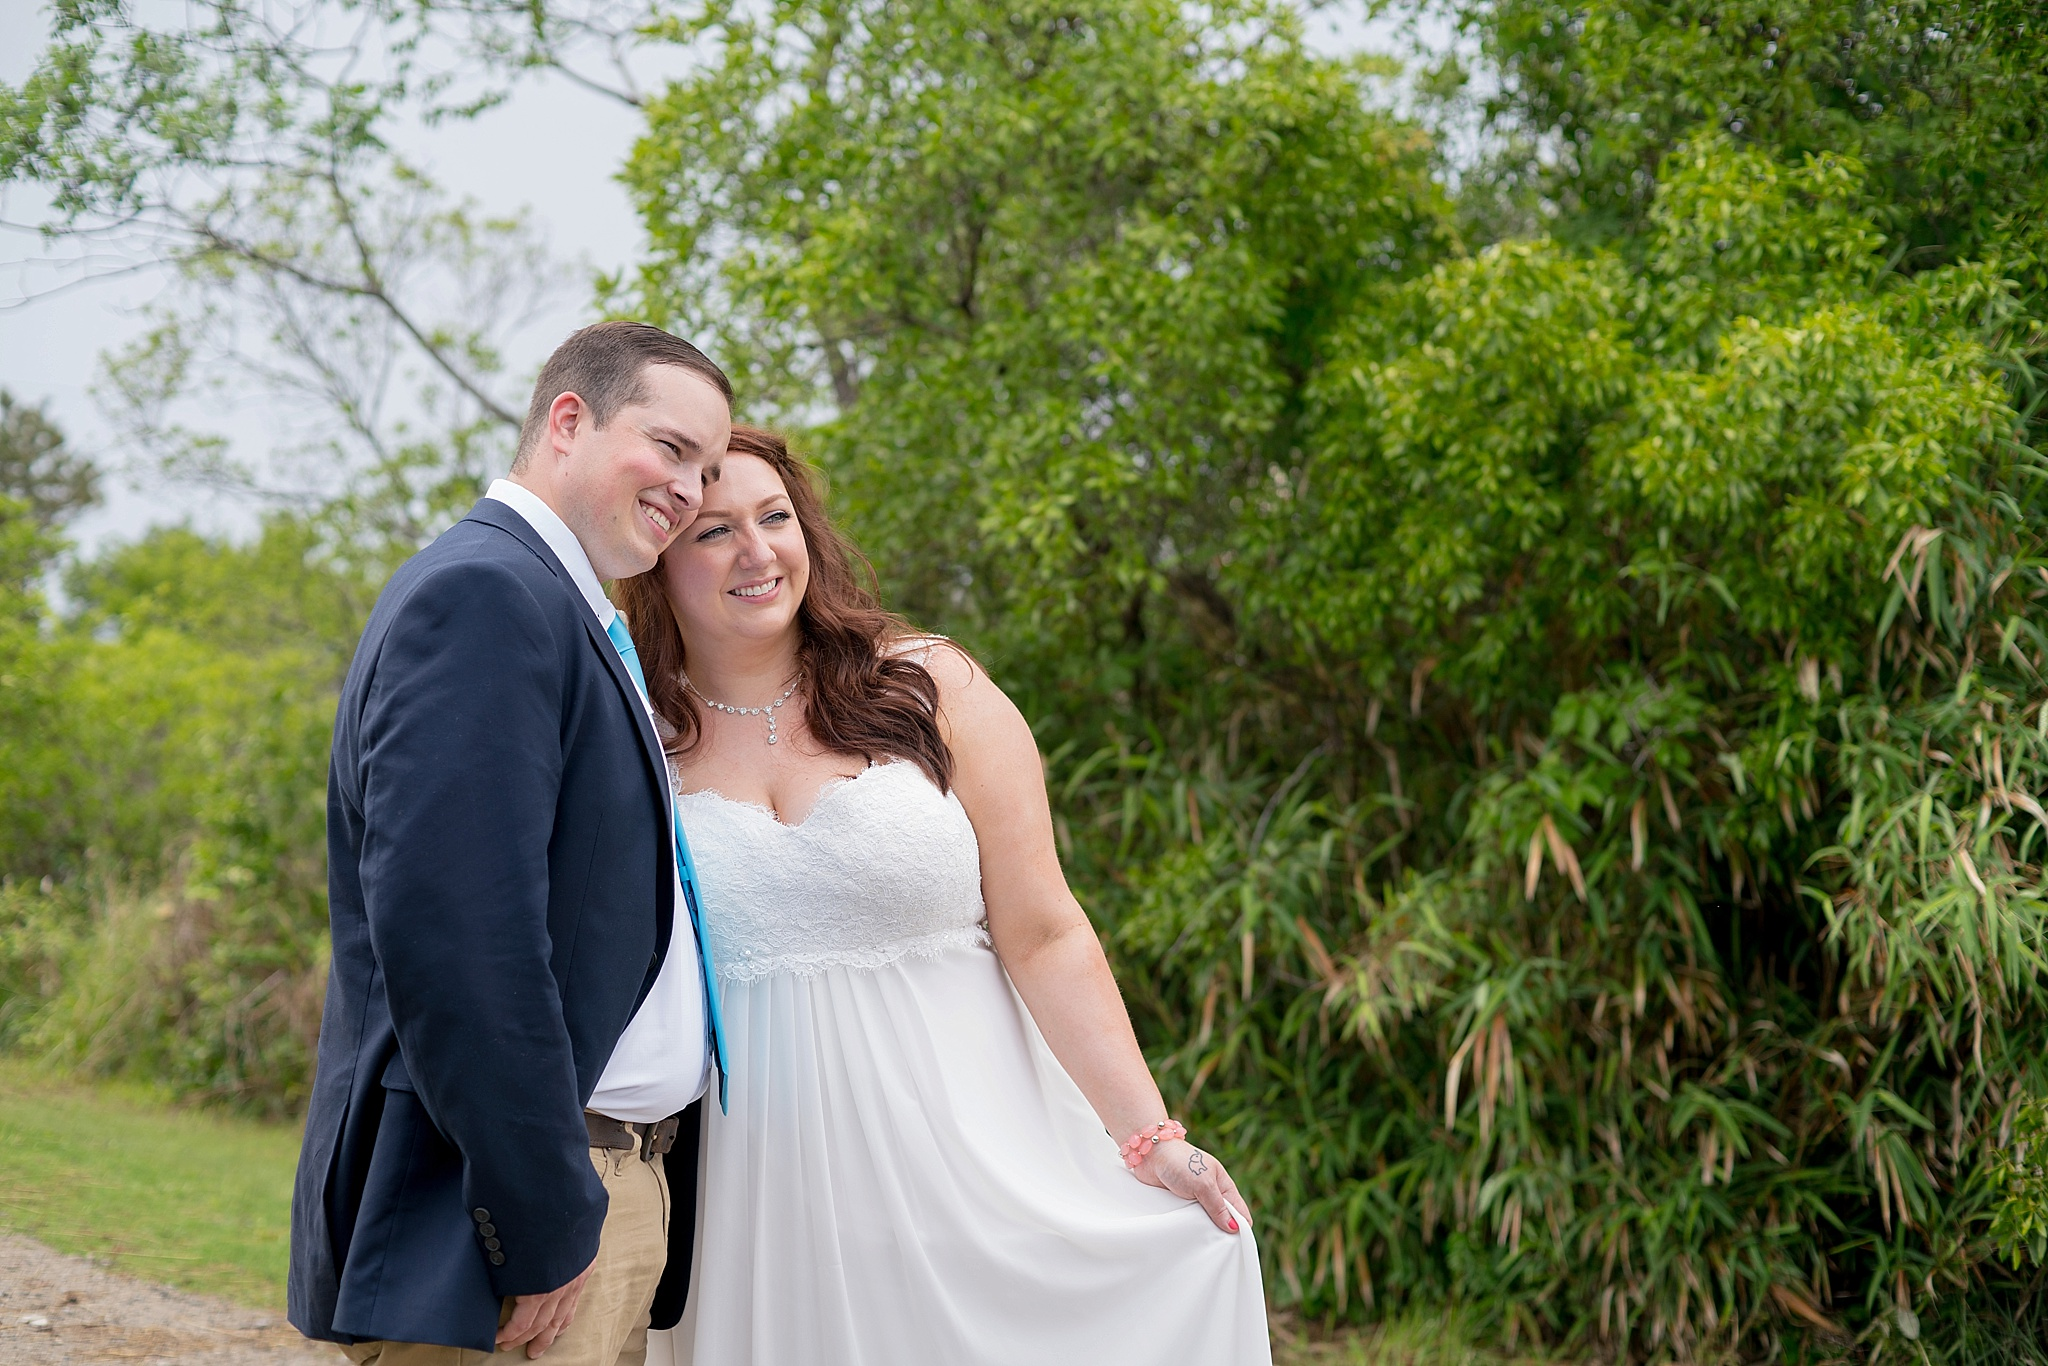 Manteo-NC-Wedding-Photographer-149.jpg